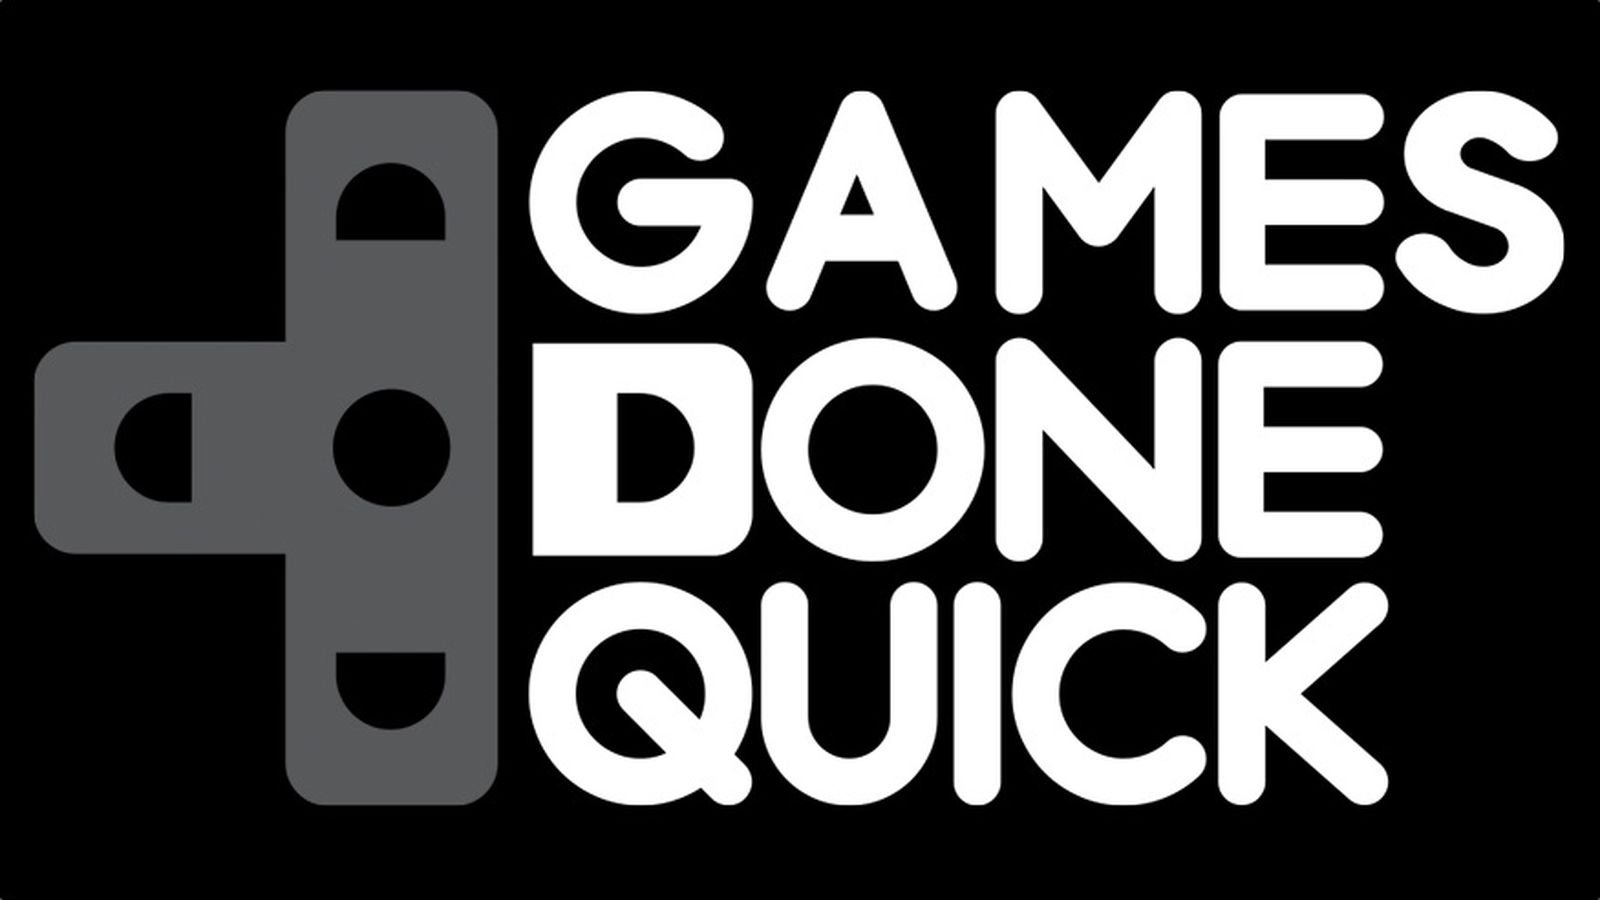 Games done quick logo.0.0